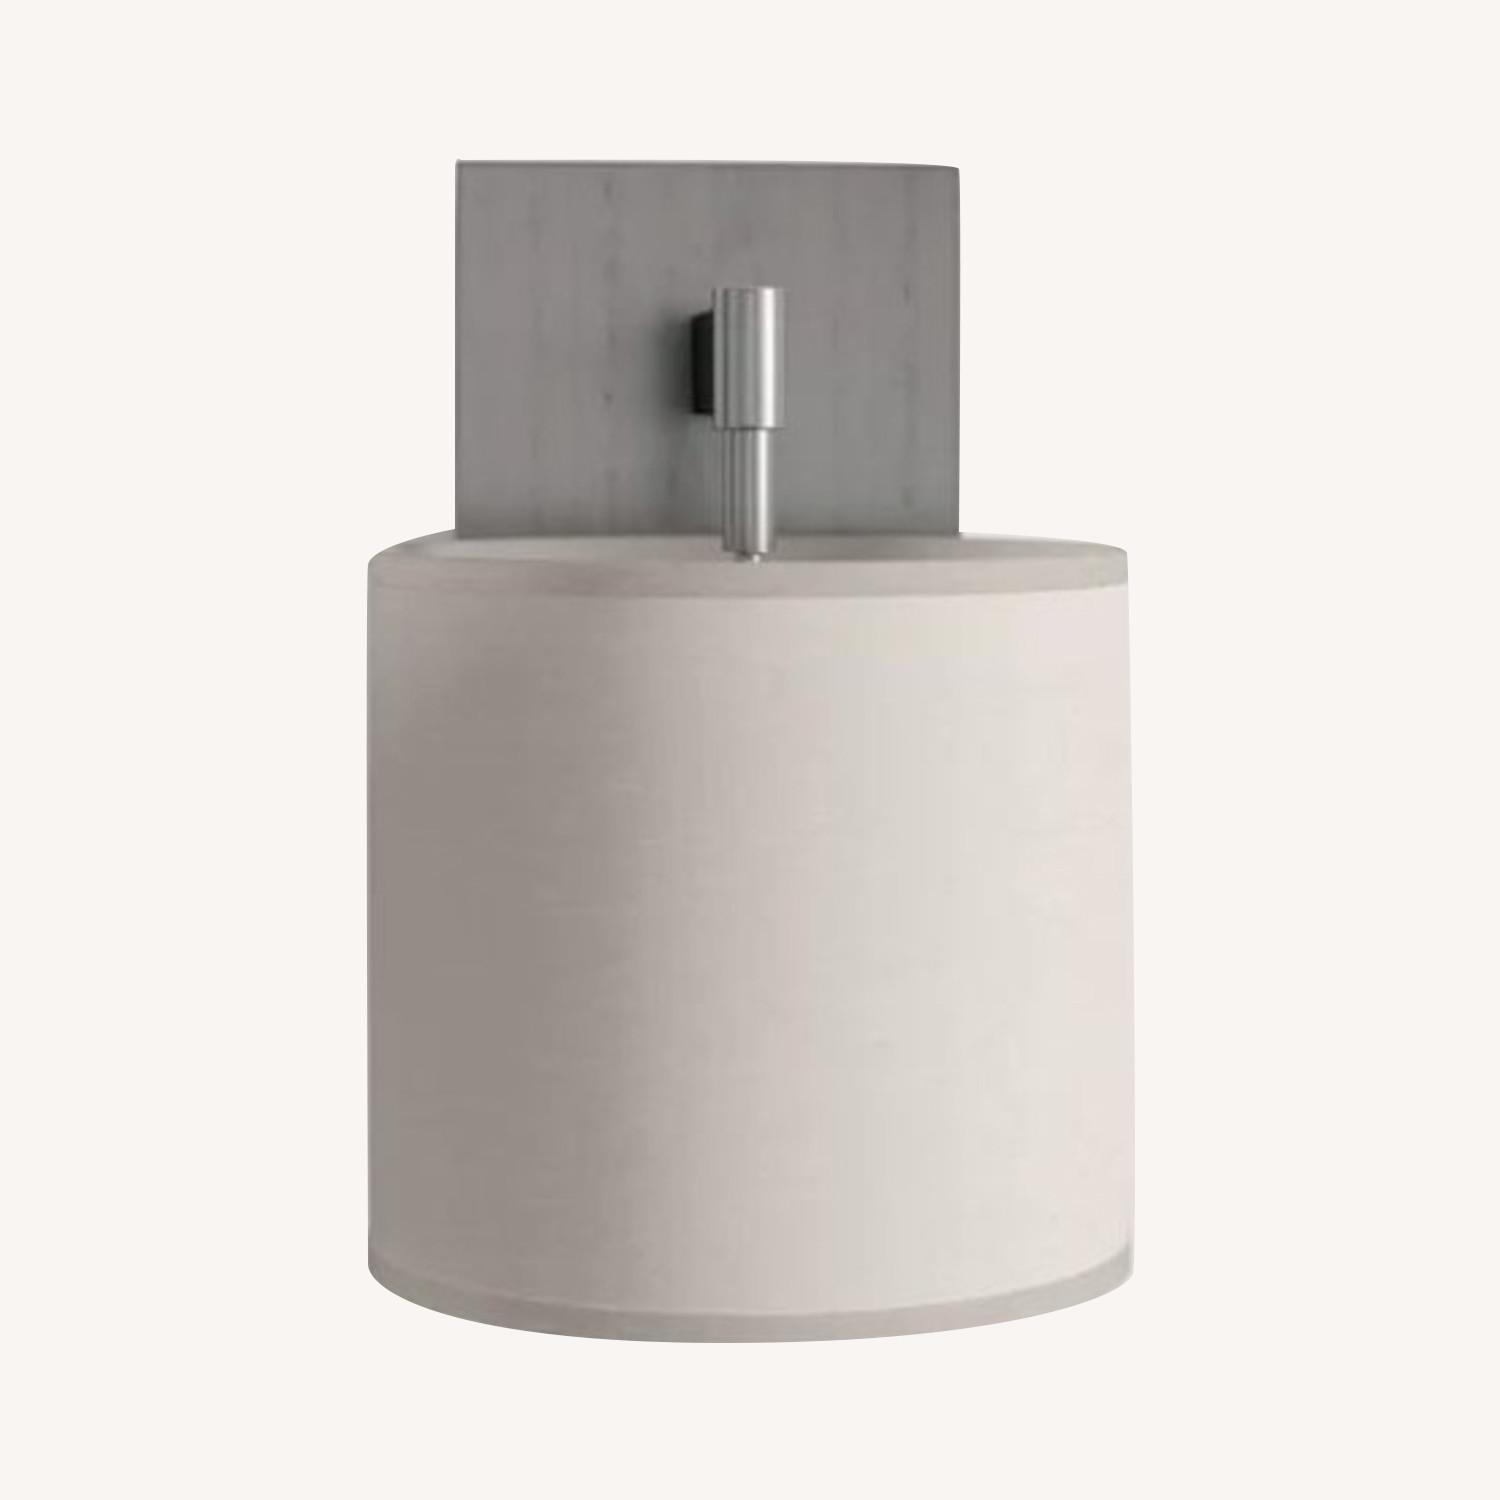 Plug In Wall Sconce Stainless Steel finish